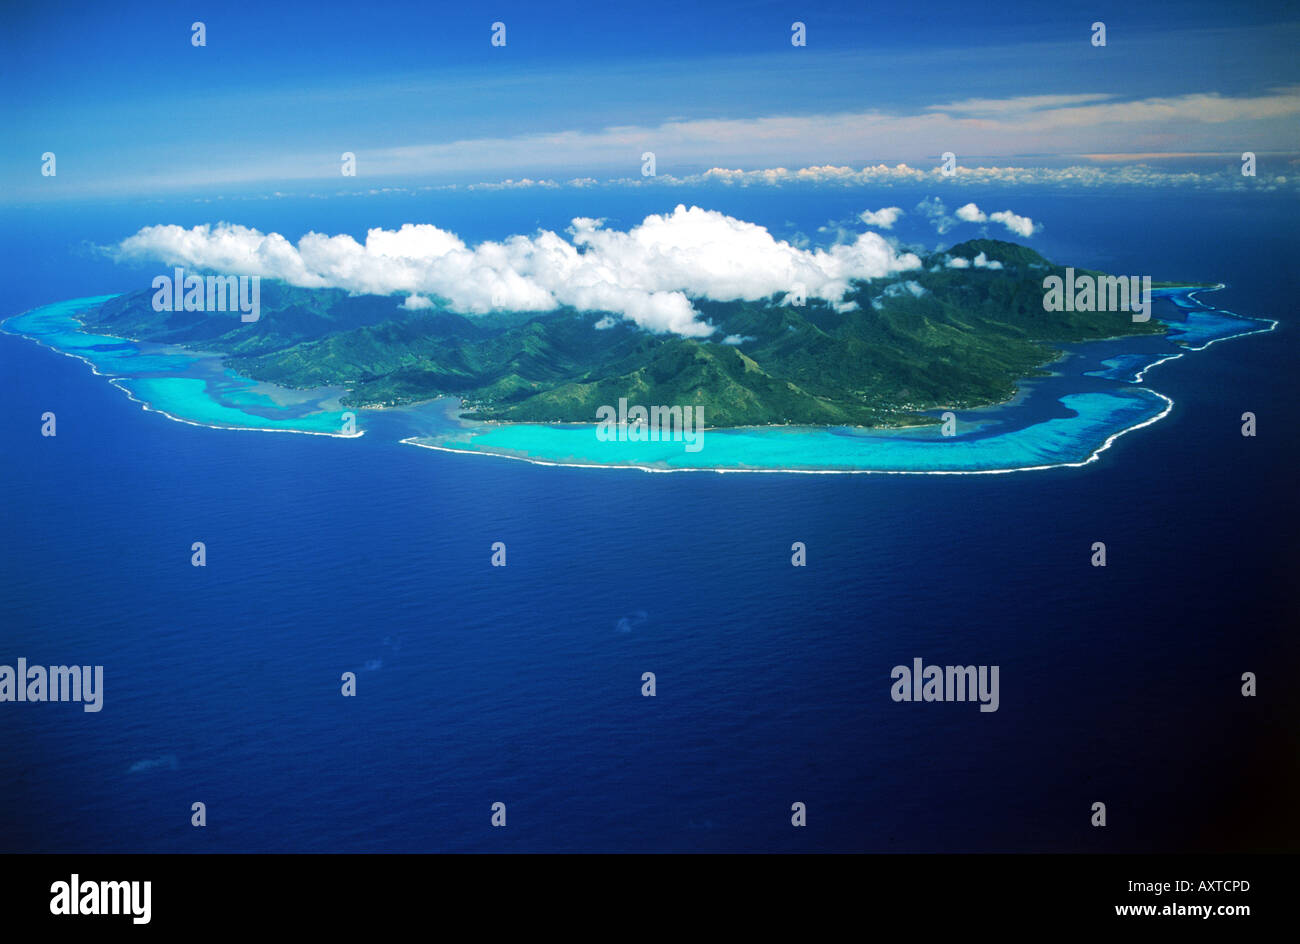 Aerial view of Moorea Island in French Polynesia swimming between blue skies and blue South Pacific - Stock Image